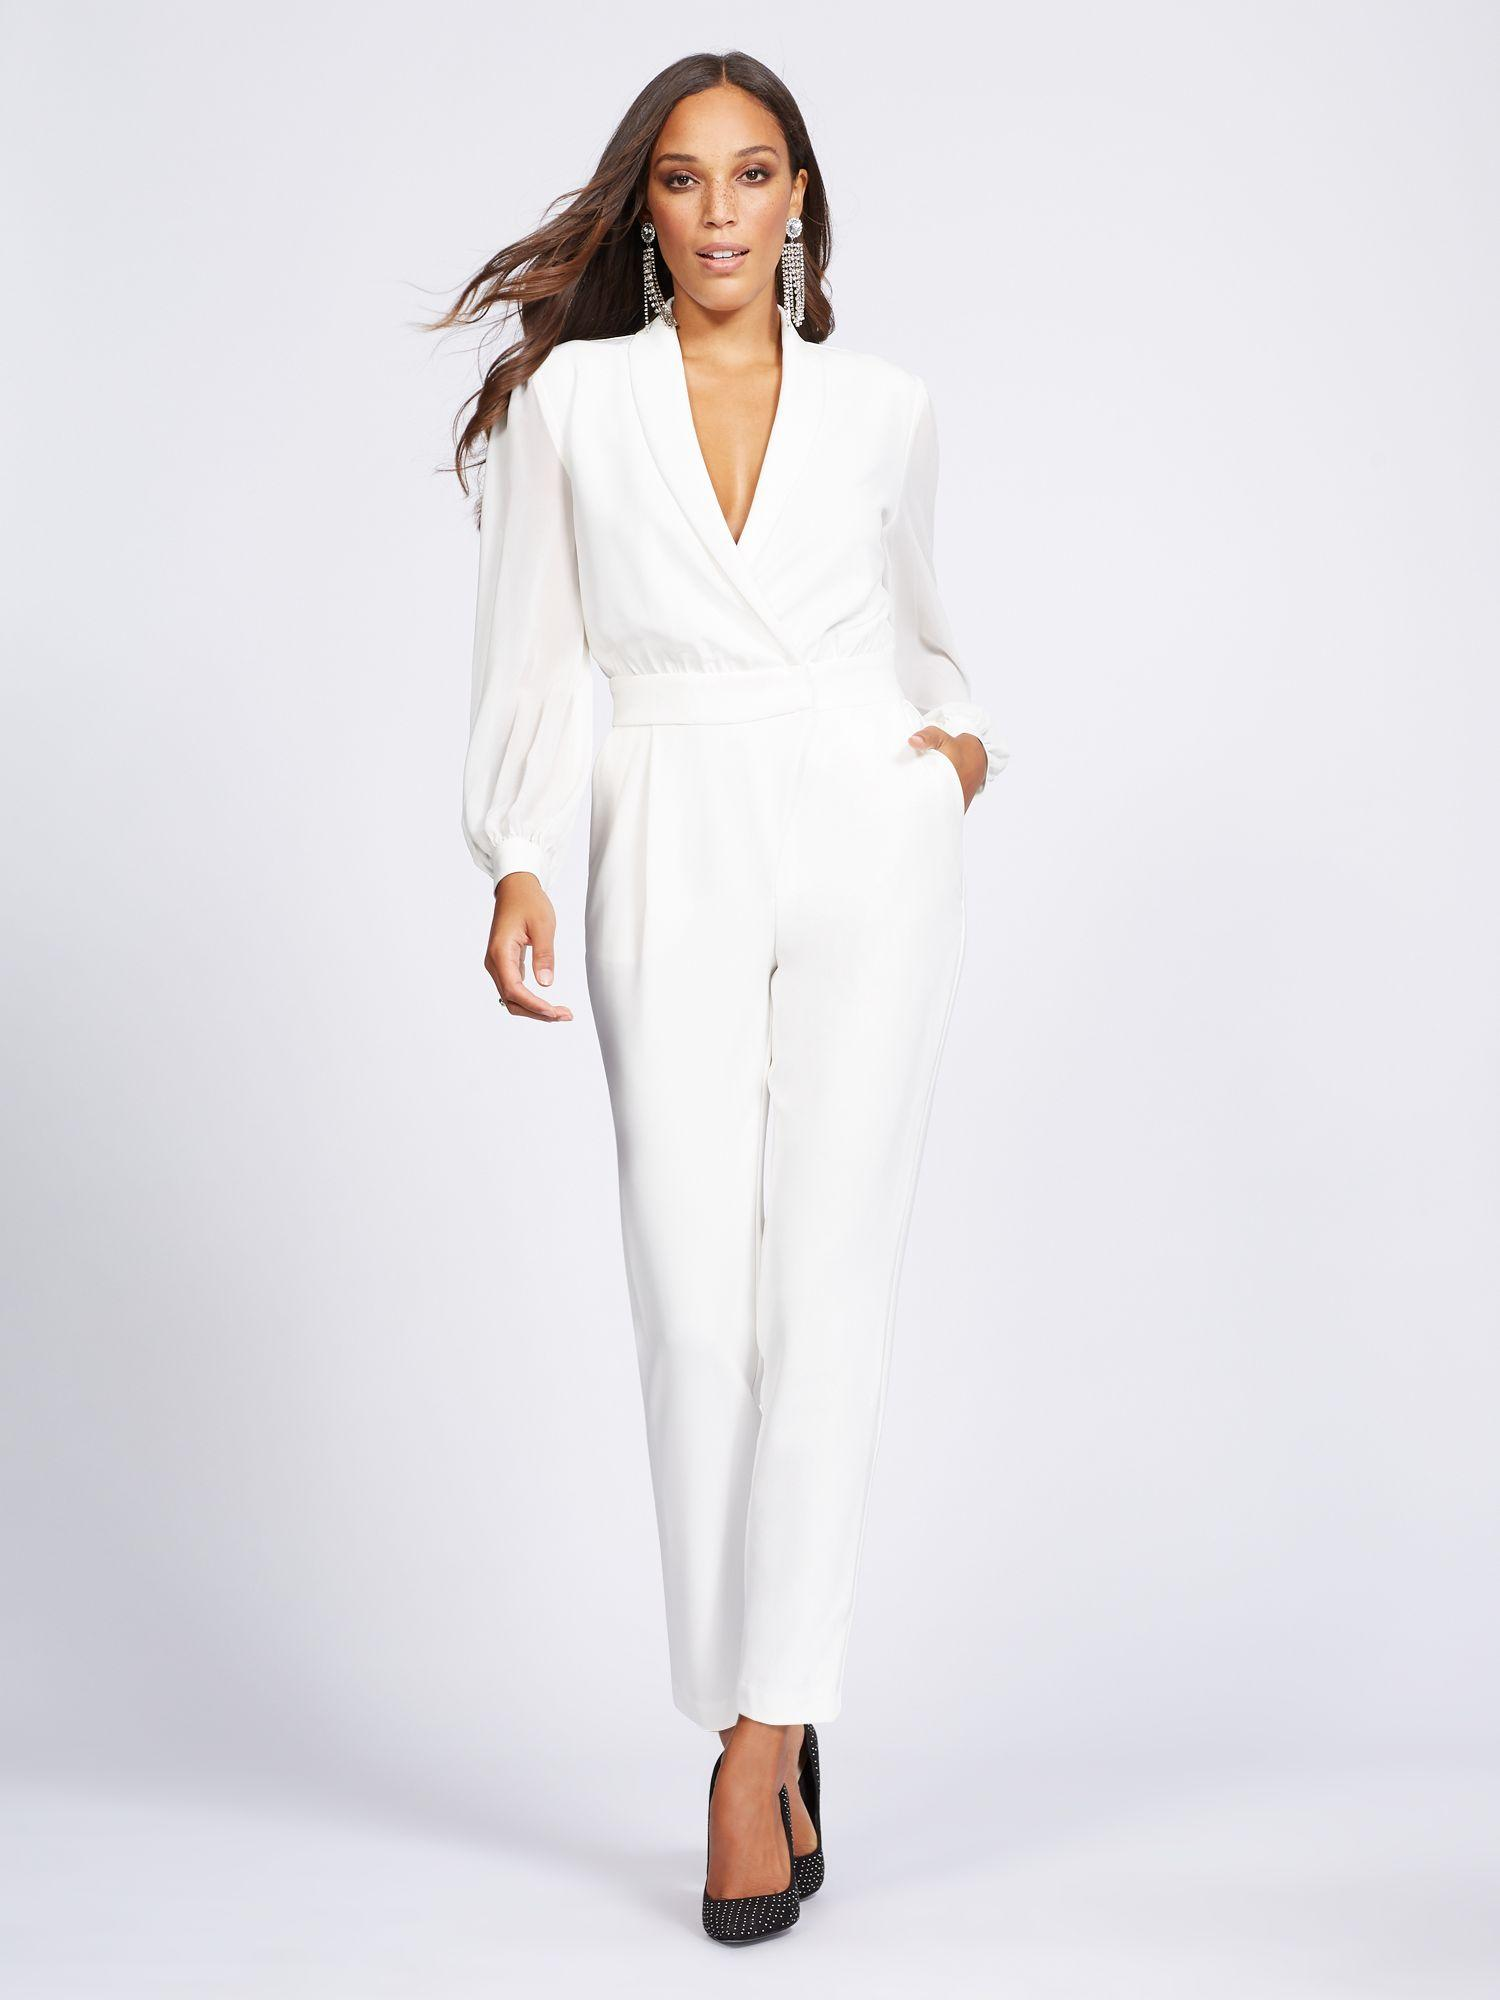 091ea4708146 New York   Company. Women s White Ivory Wrap Jumpsuit - Gabrielle Union  Collection